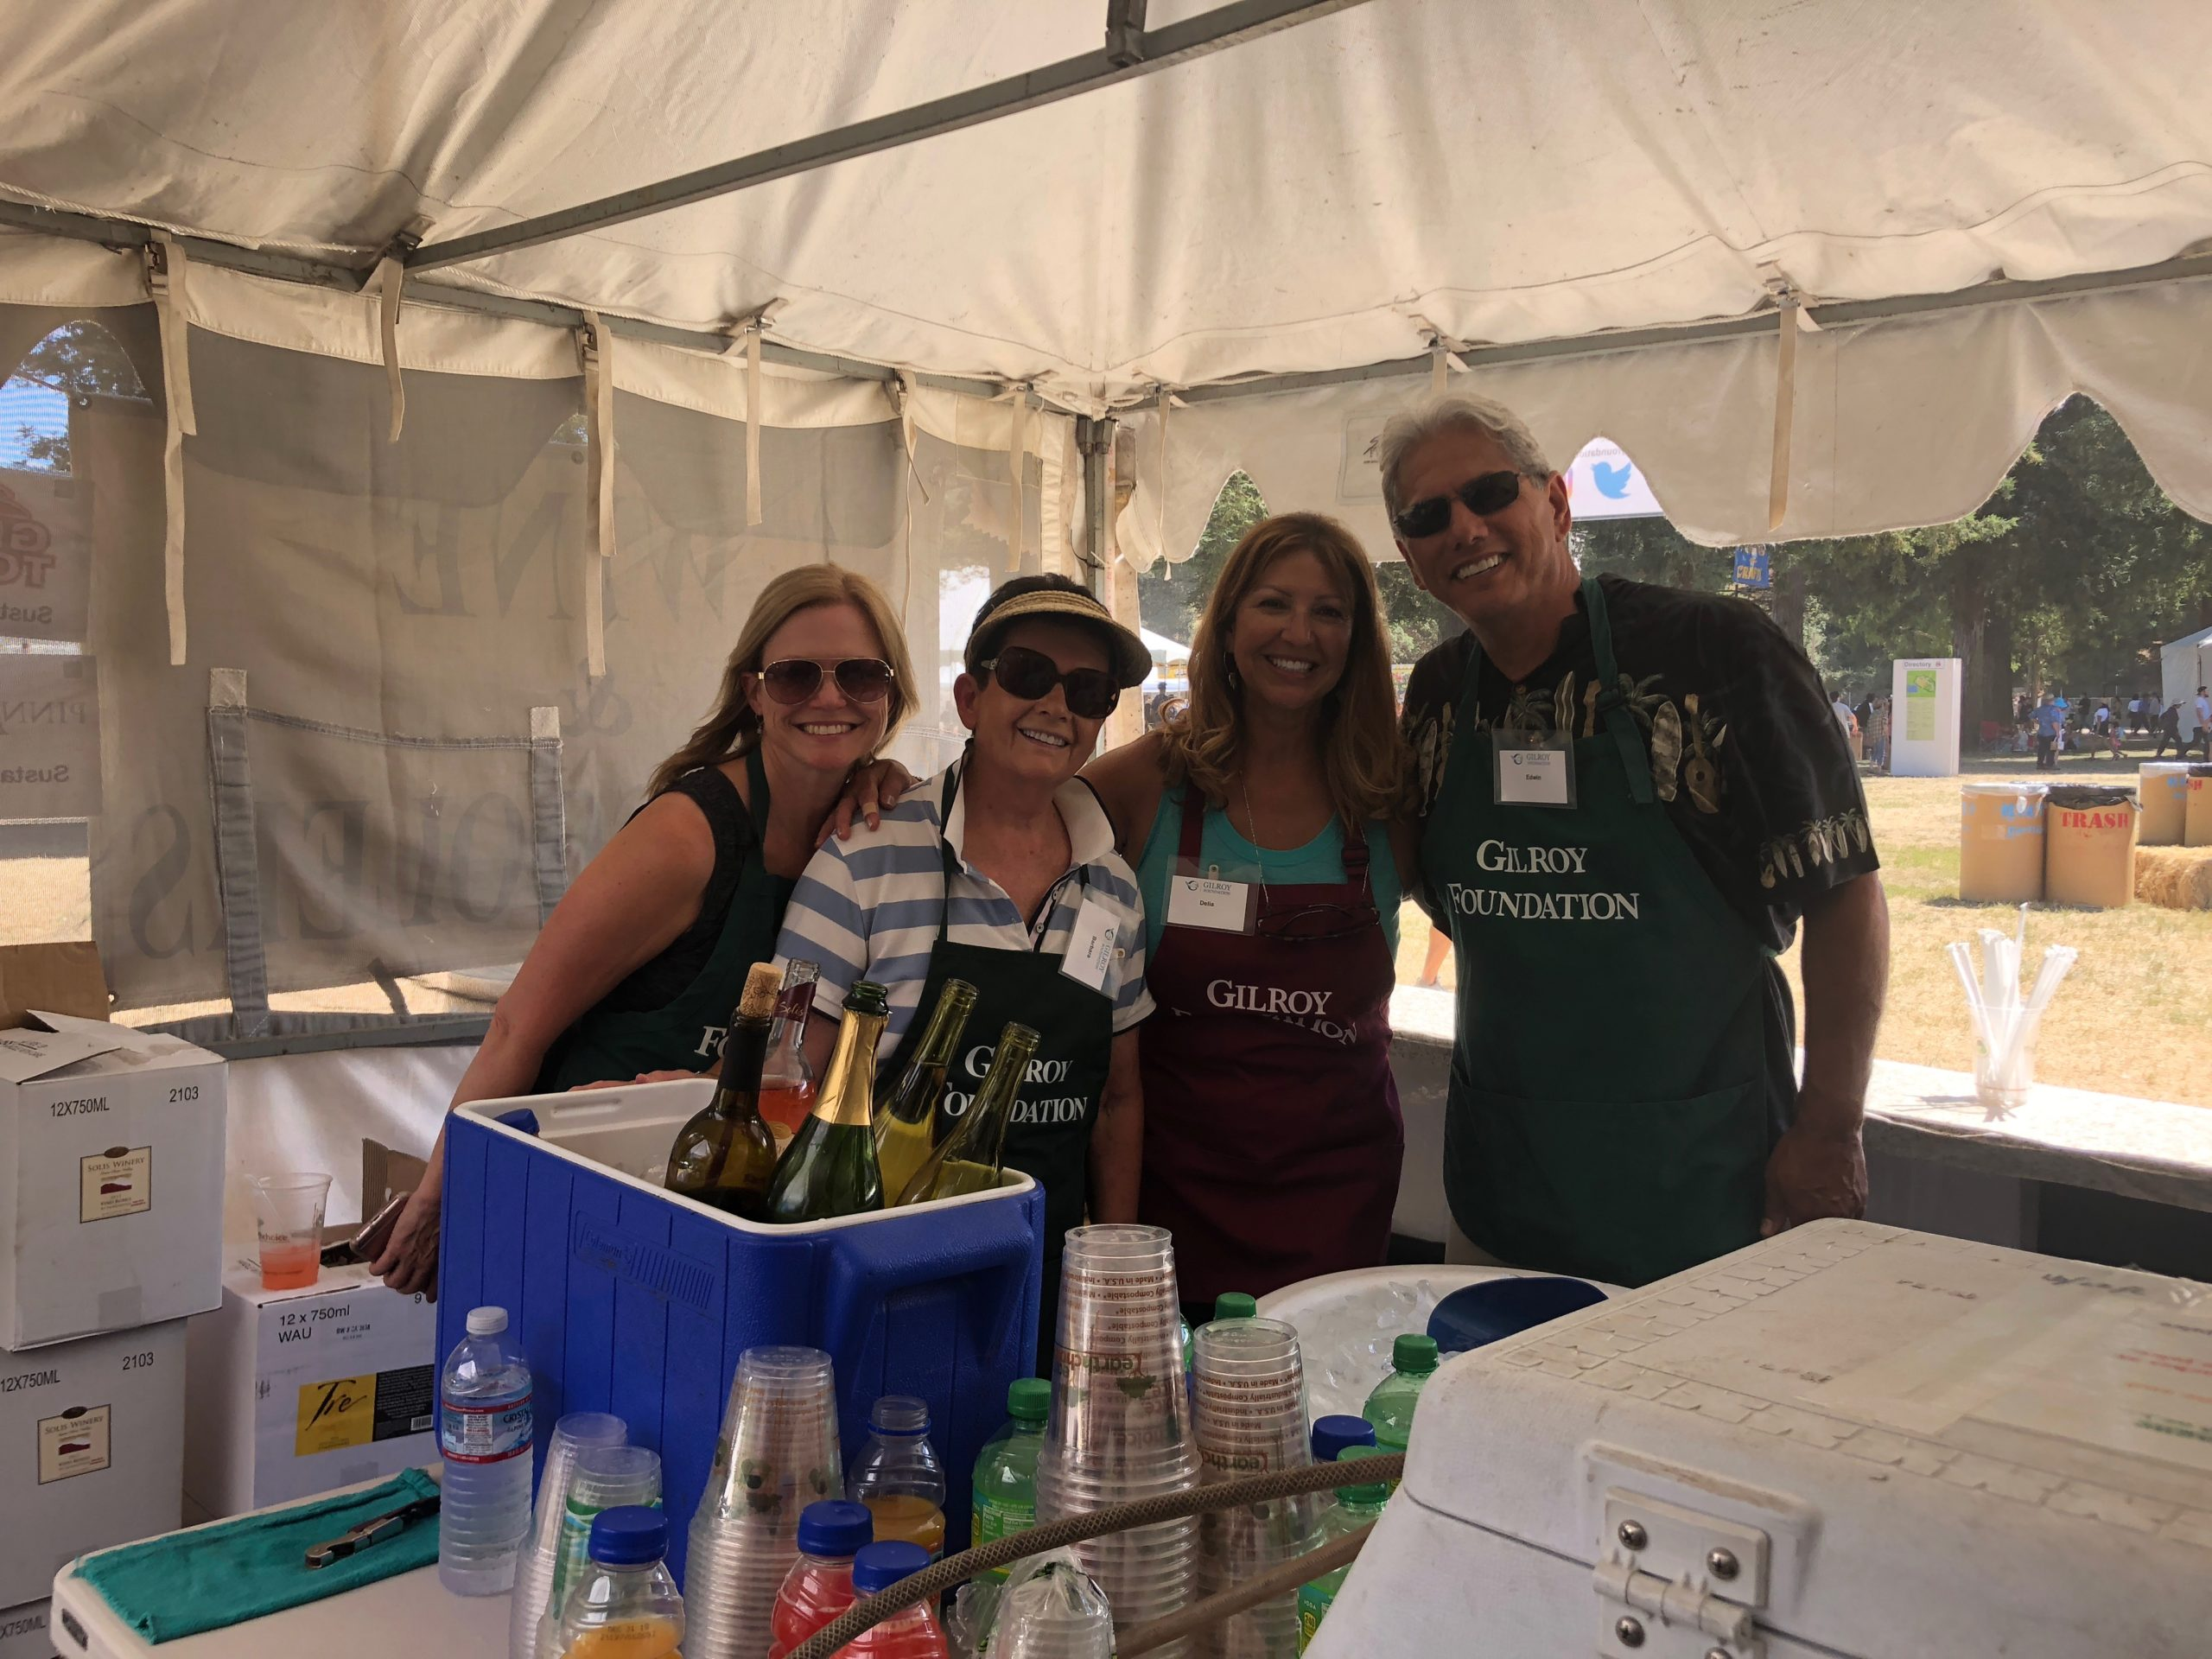 Photo of Lori Kent, Barbara Biafore, Delia Diaz, and Edwin Diaz at Gilroy Foundation Garlic Festival Booth in 2018